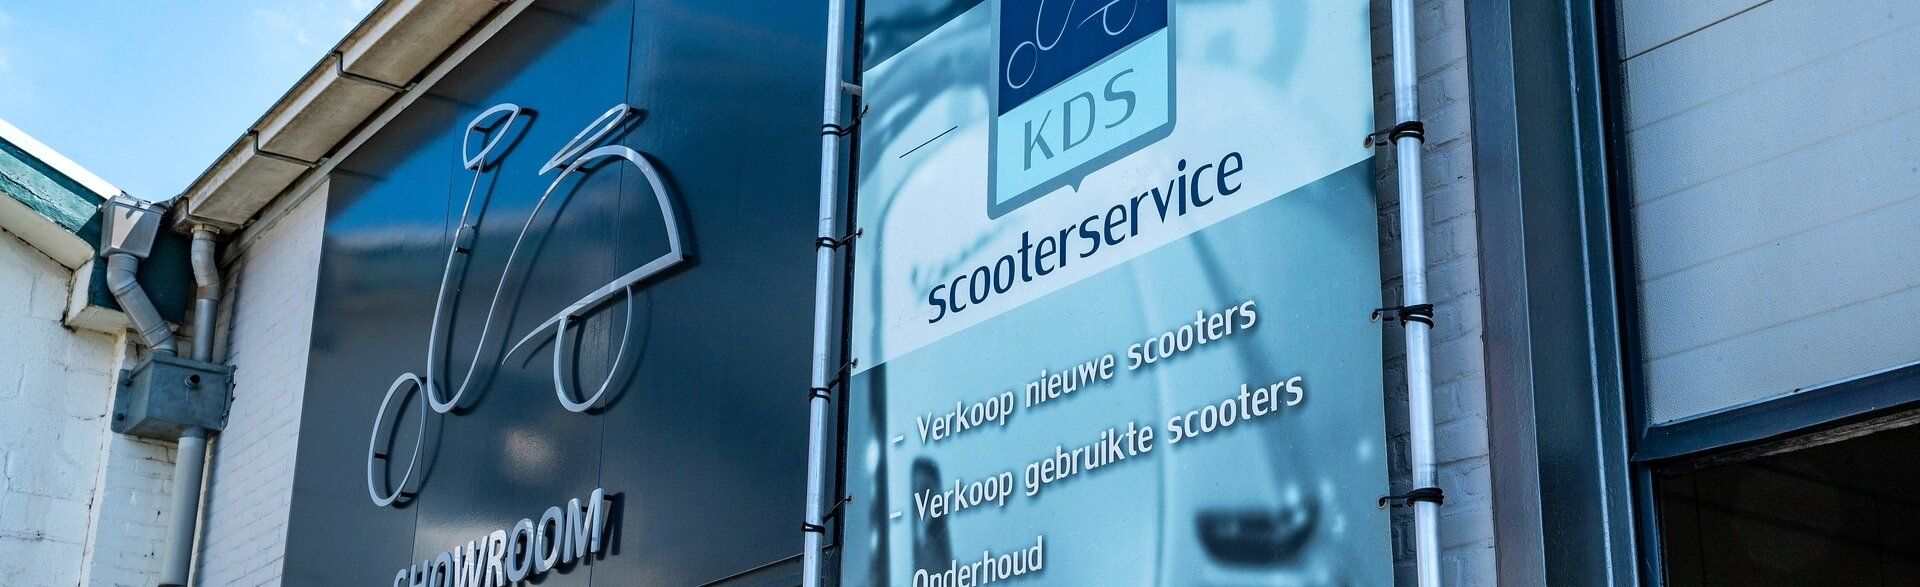 Home - KDS Scooterservice